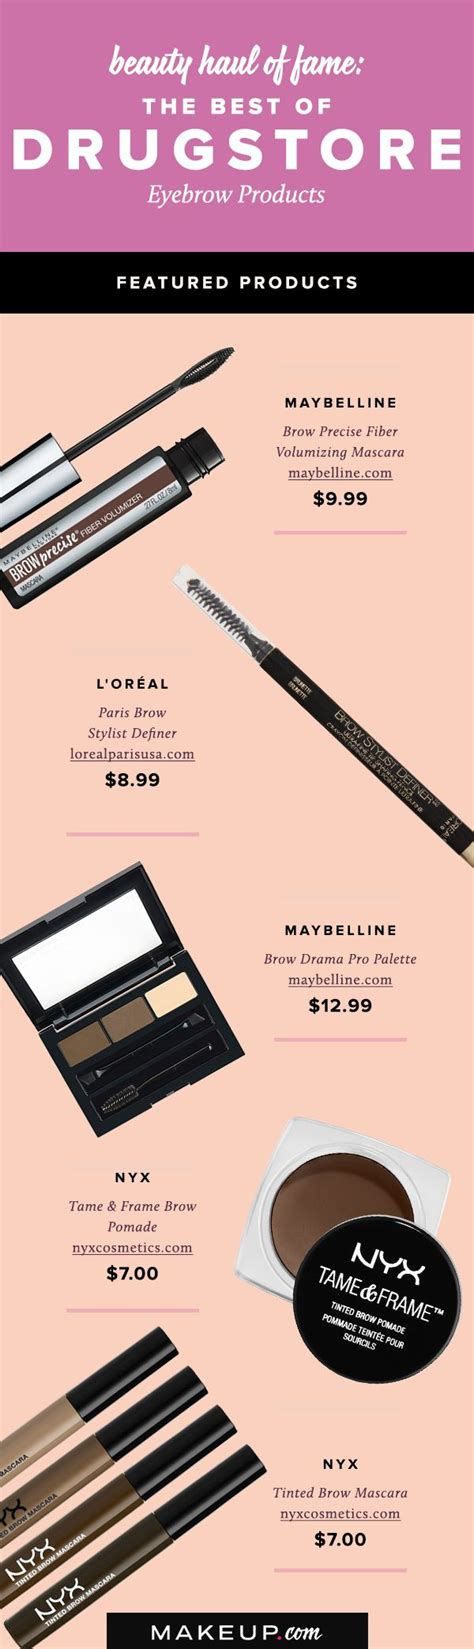 Empty Your Bank Account With Just Your Thumbs by Makeup Ideas 2017 2018 You Shouldn T To Empty Your